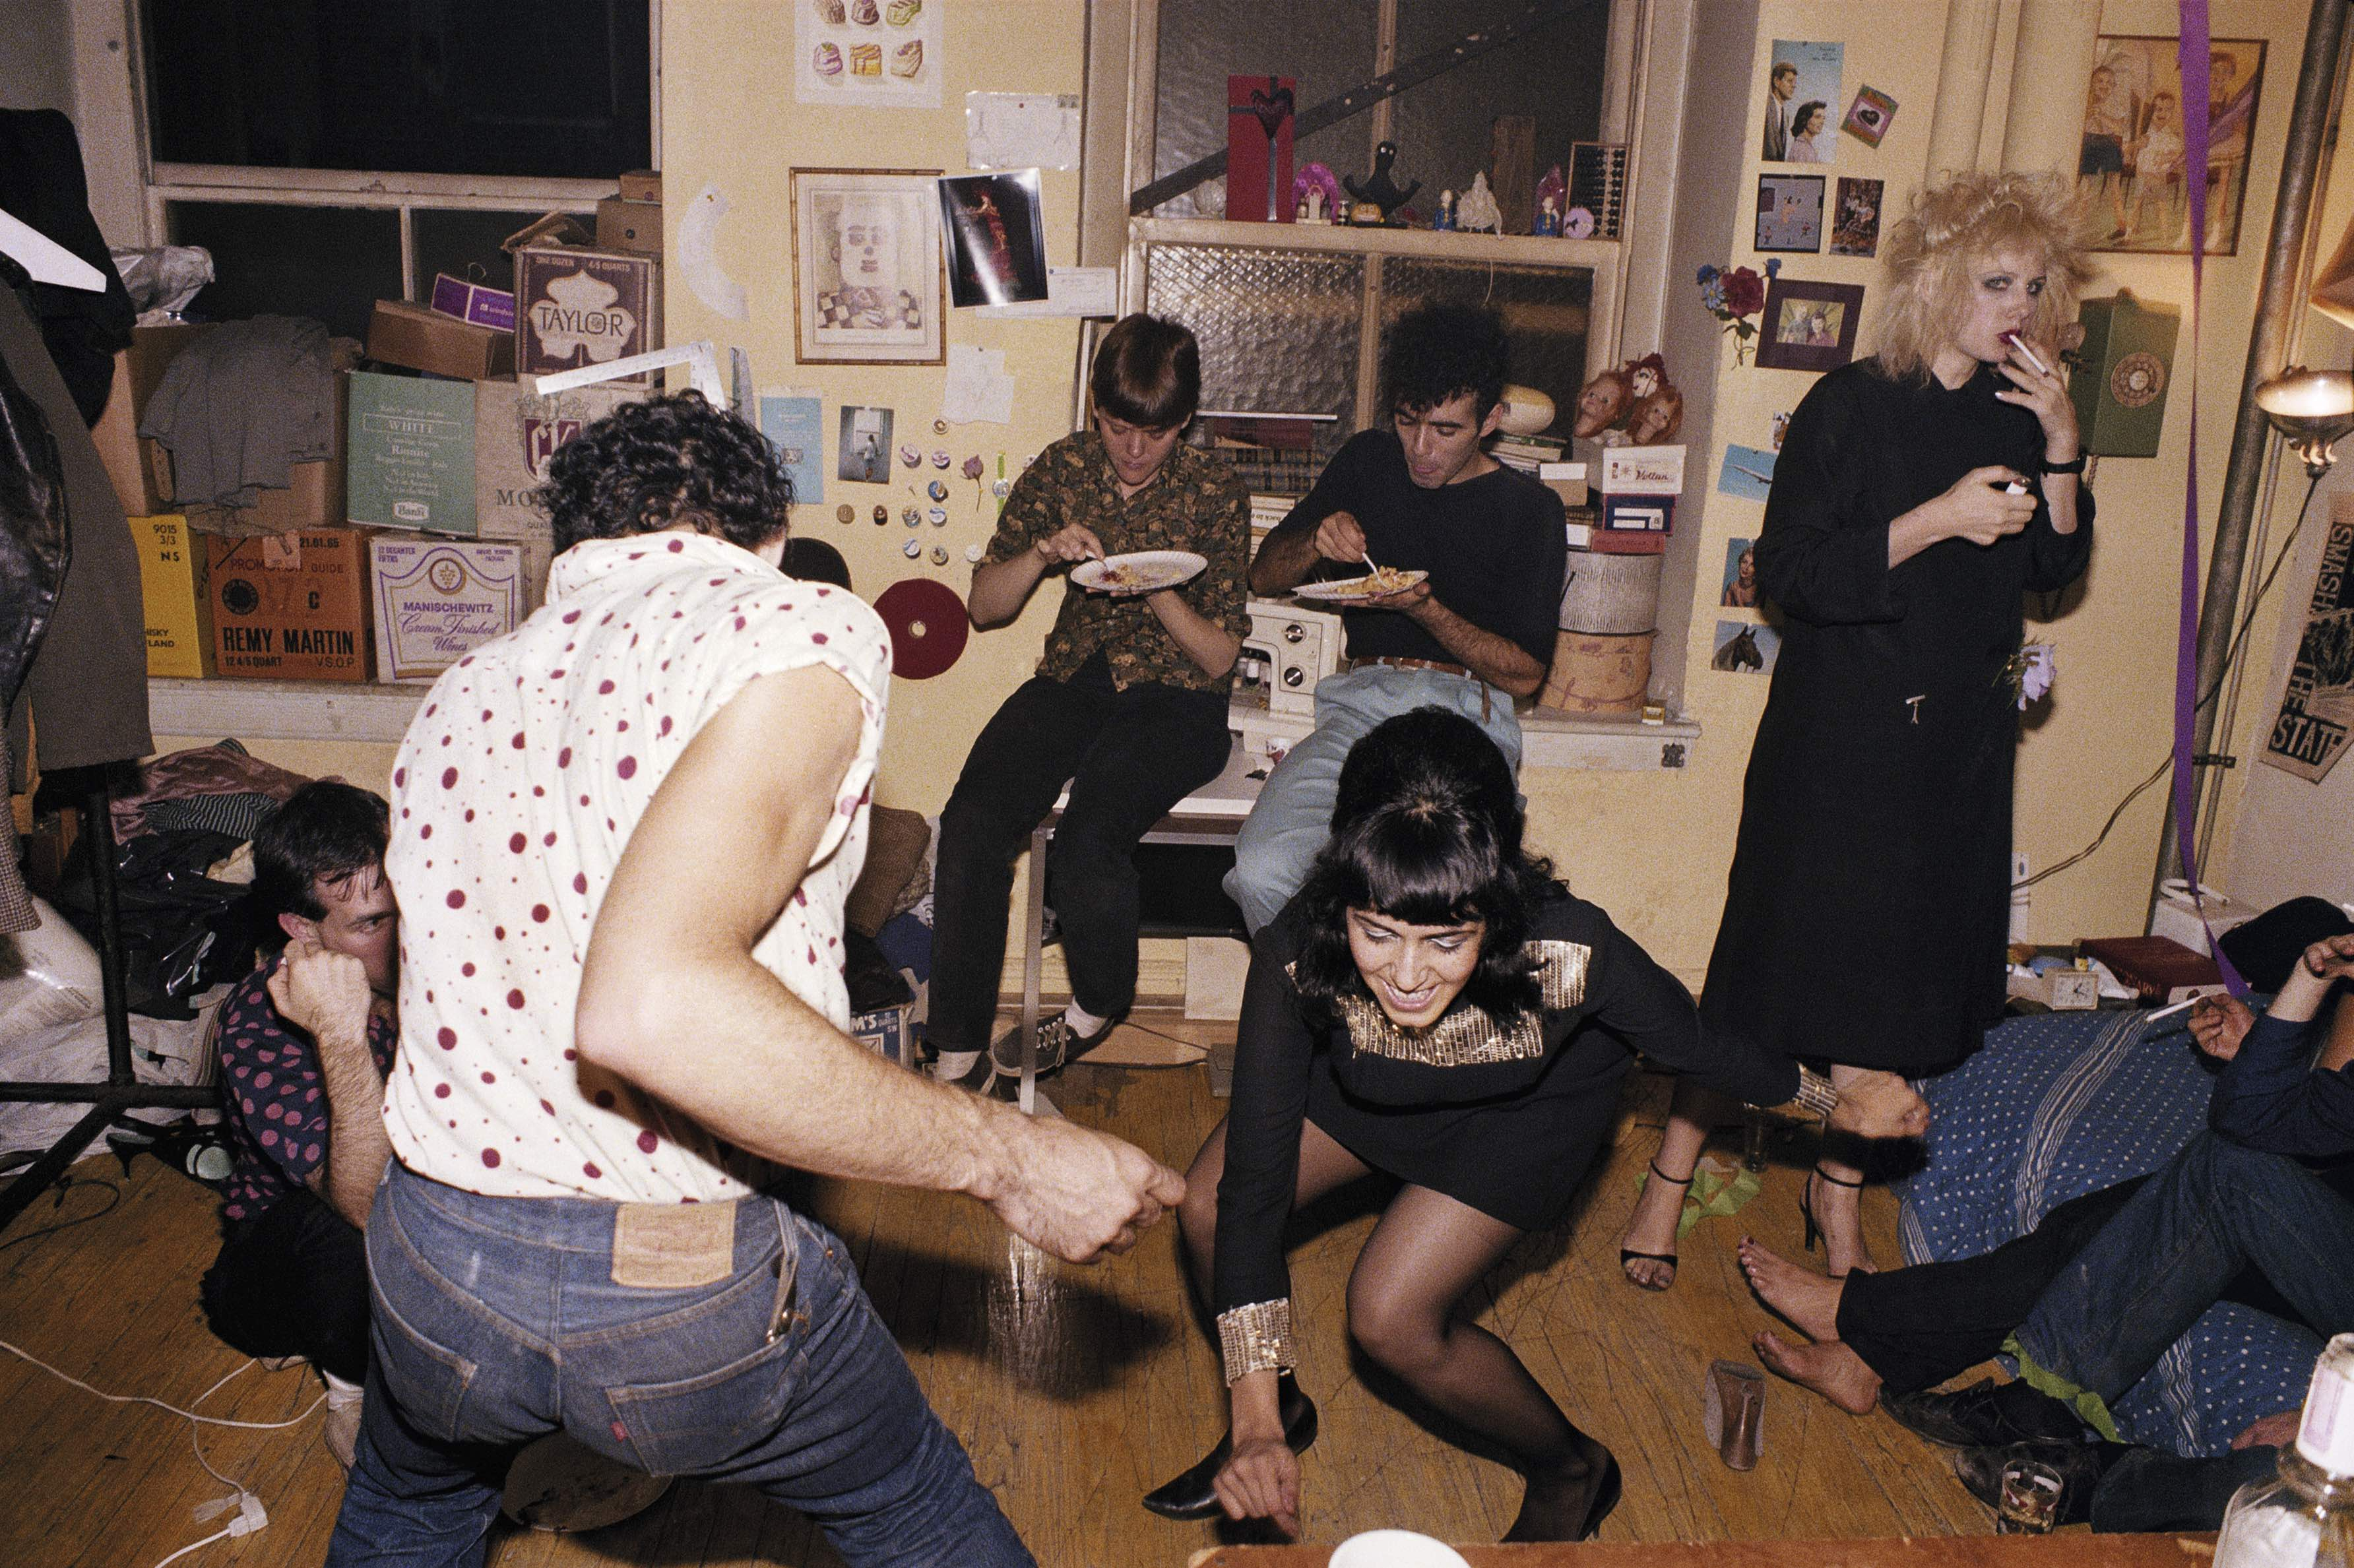 Nan Goldin, Twisting at my birthday party, New York City